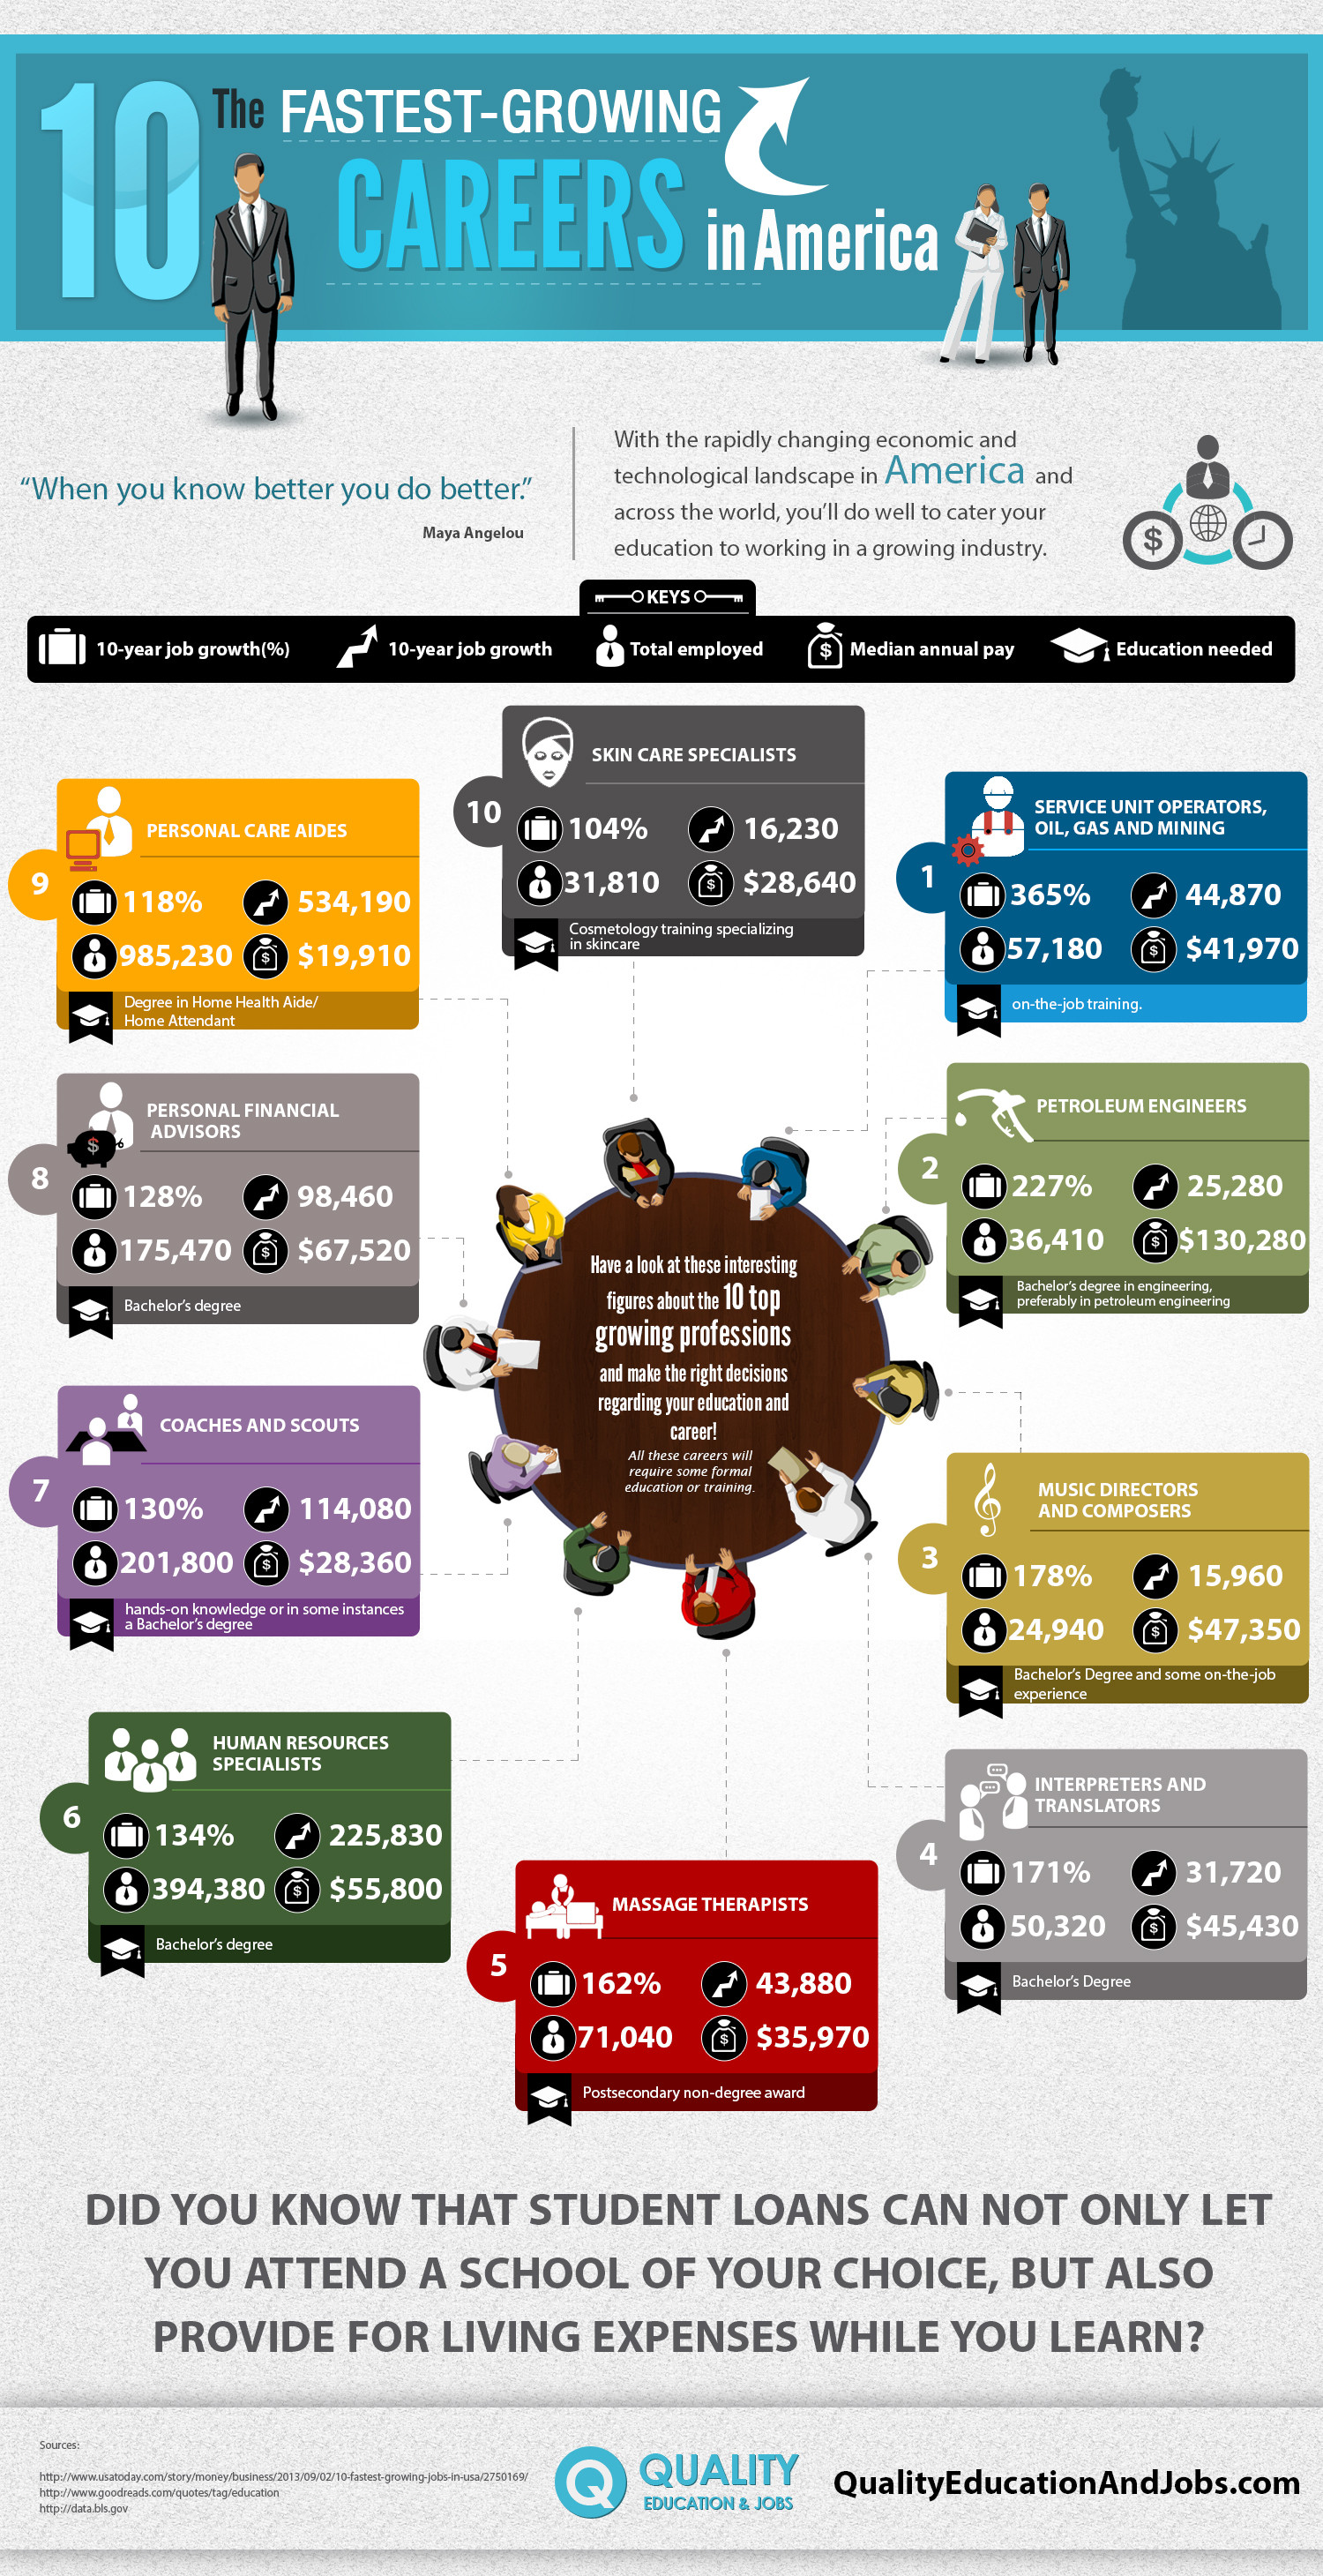 The 10 Fastest-Growing Careers in America Infographic